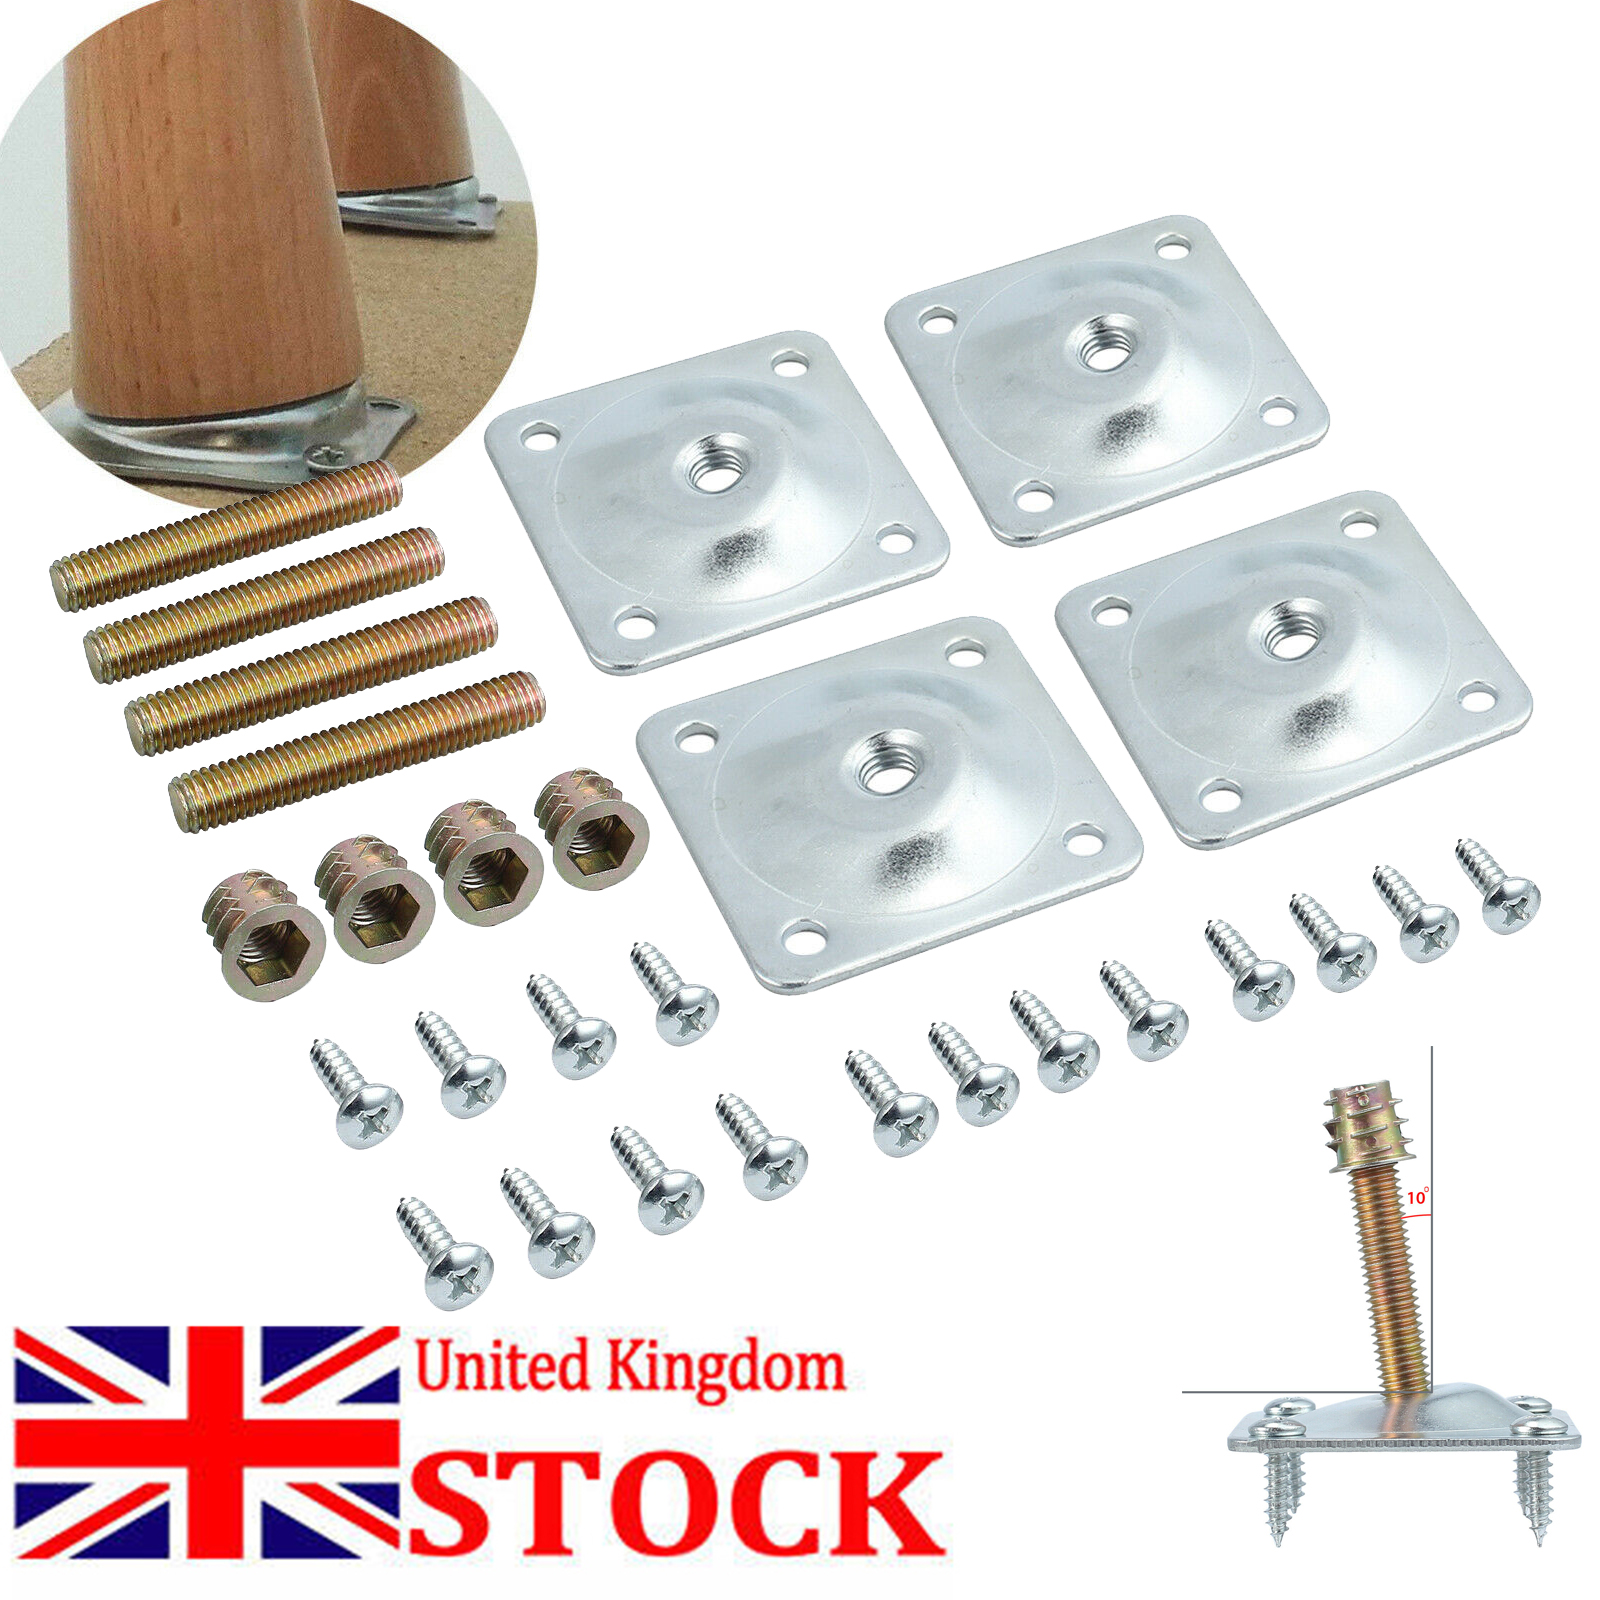 M10 Mounting Plate Mounting Parts and Metal Dowel Nut for Furniture Legs M8